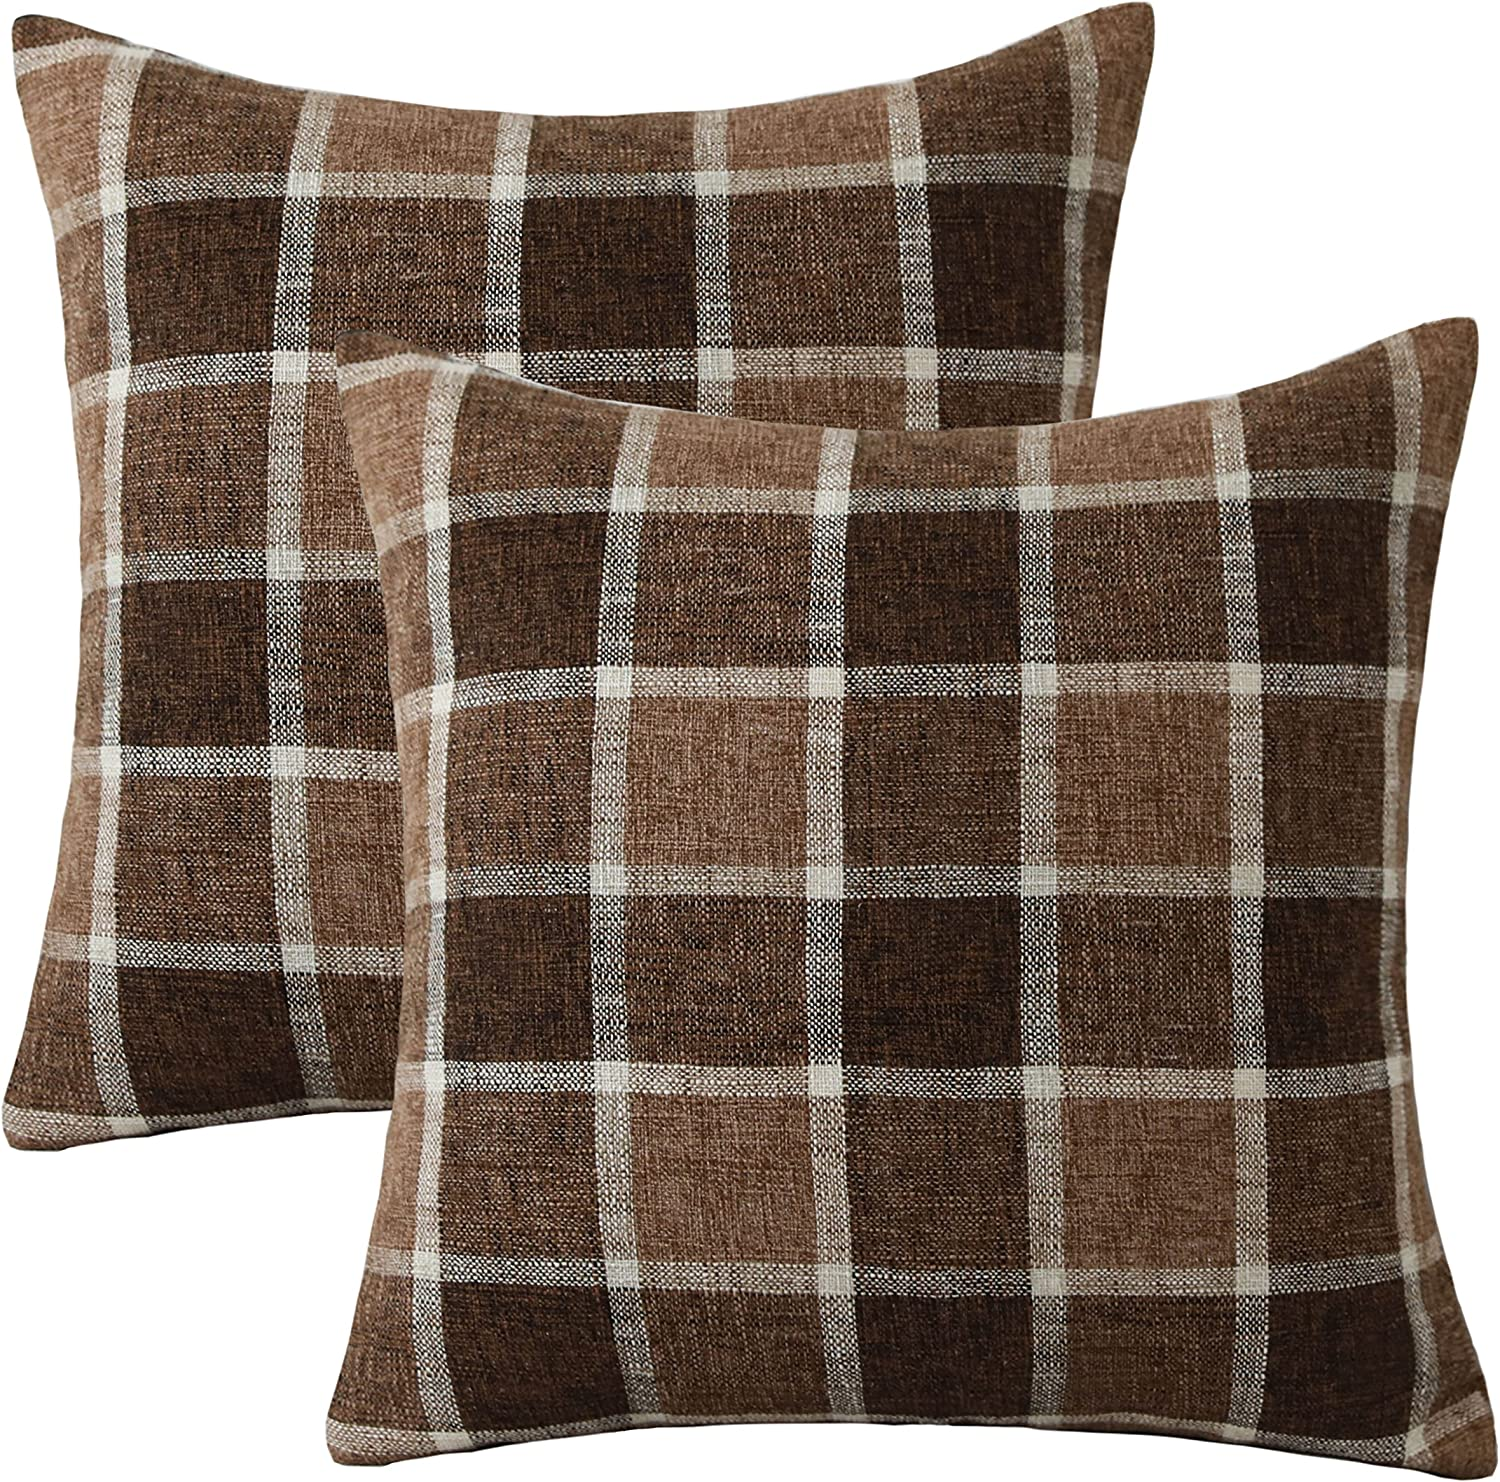 Home Brilliant Outdoor Decorative Throw Pillow Covers for Sofa Bench Couch Cotton Linen Checker Plaids Cushion Covers, Set of 2, 18 x 18 inches(45x45 cm), Chocolate Bar